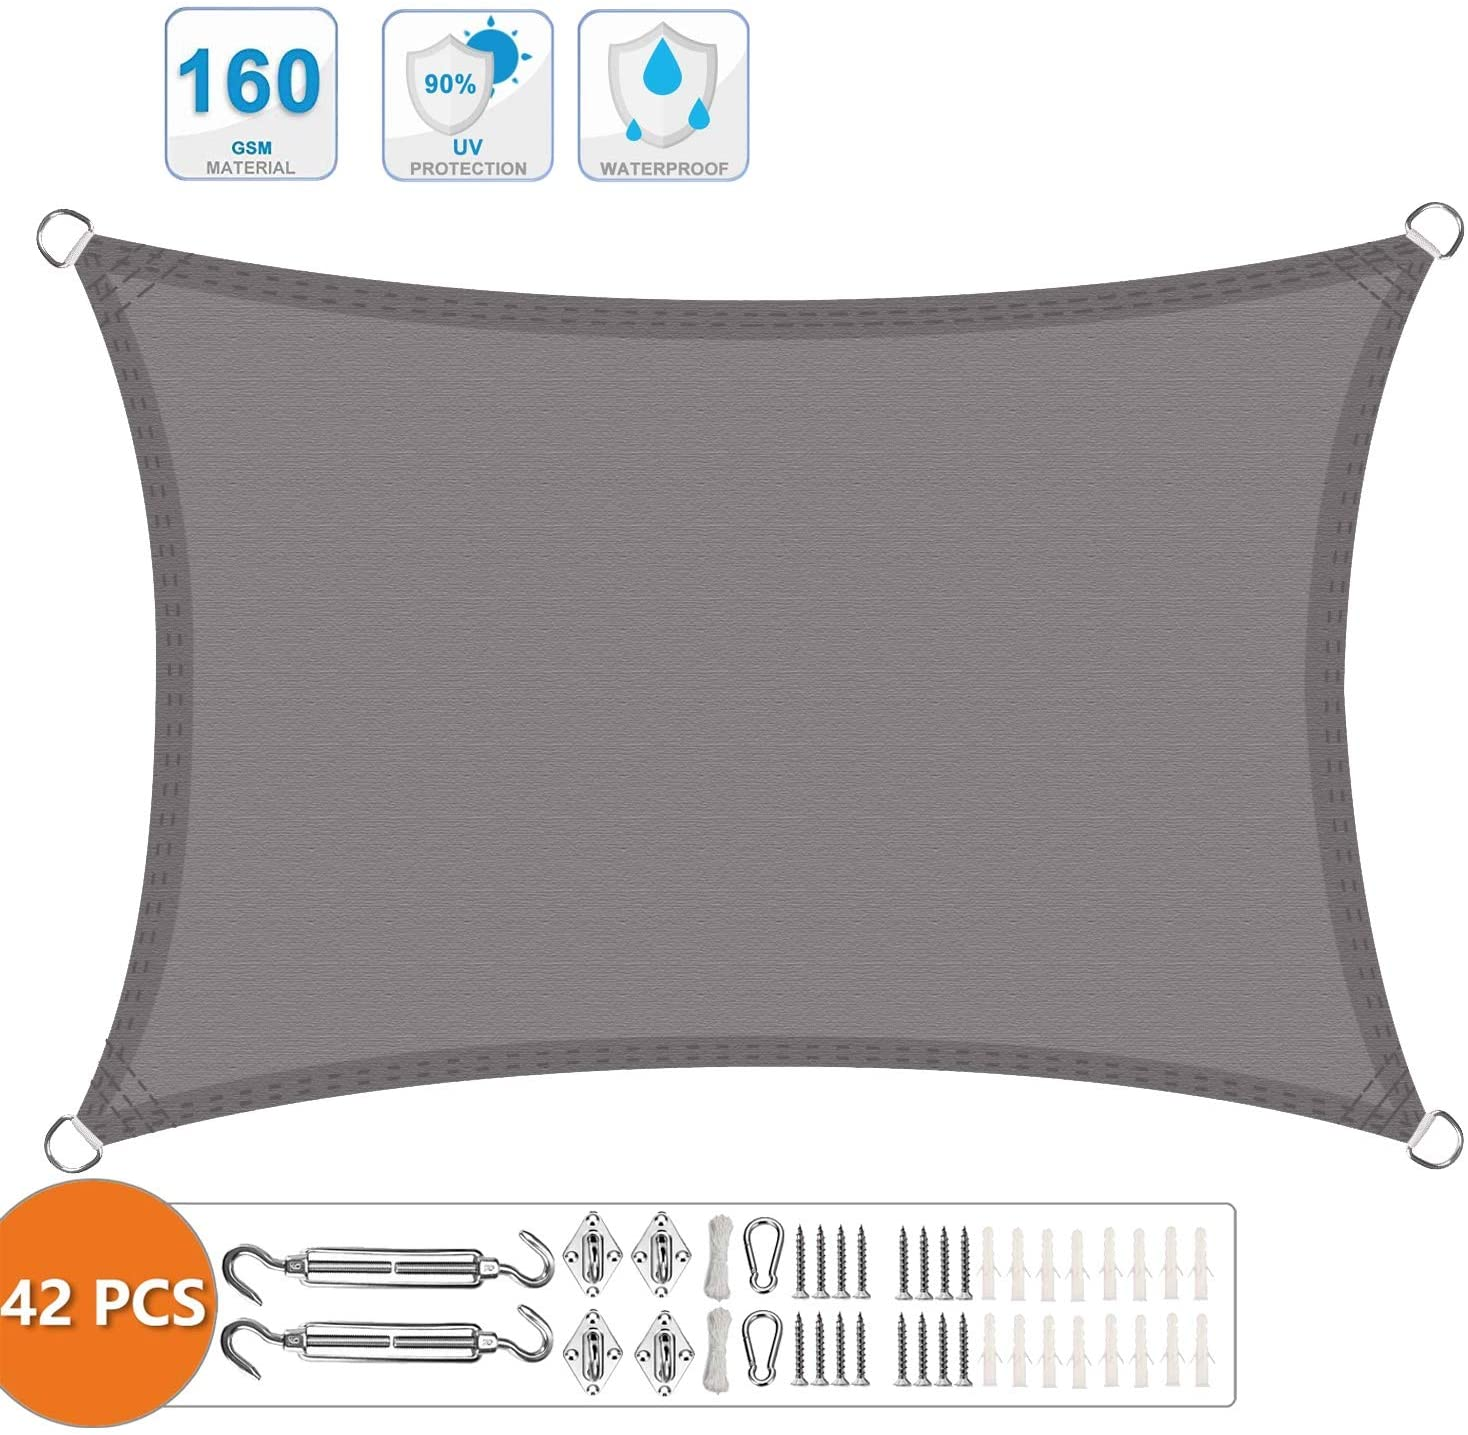 XXJF Shade Sail Canopy 95uvBlockageWaterairPermeable,DurableRopesIncluded Sail Canopy Awning CurvedEdgeWovenPolyester PerfectforOutdoorPatioGardenYard (Color : Gray, Size : 3.5x6m)